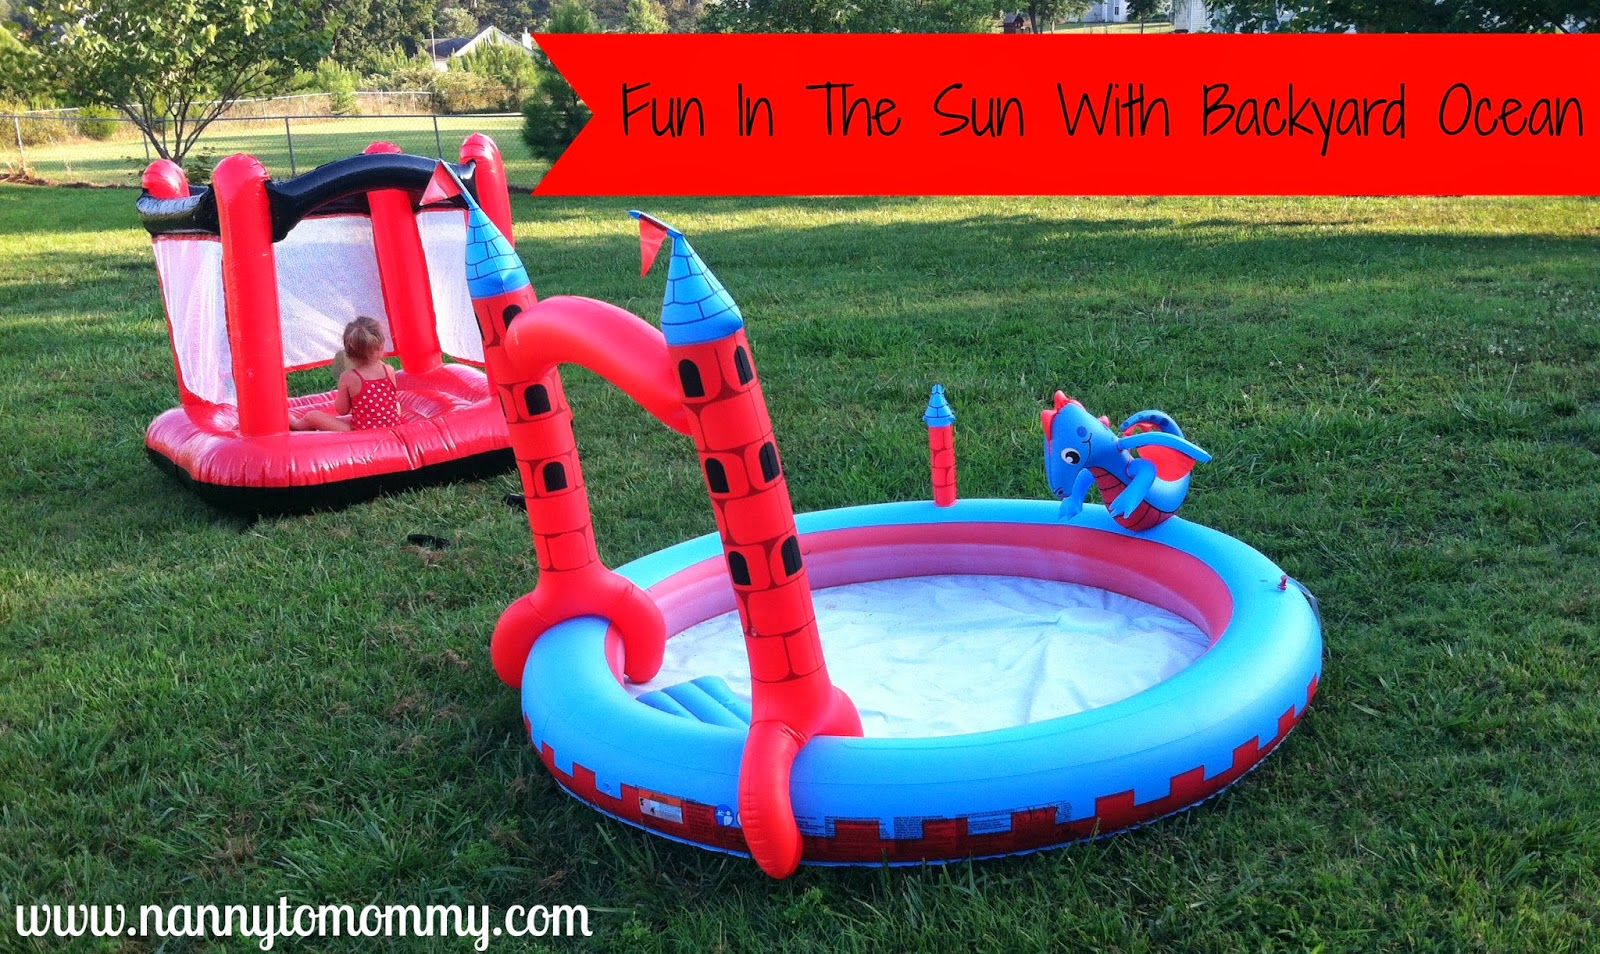 nanny to mommy fun in the sun with backyard ocean